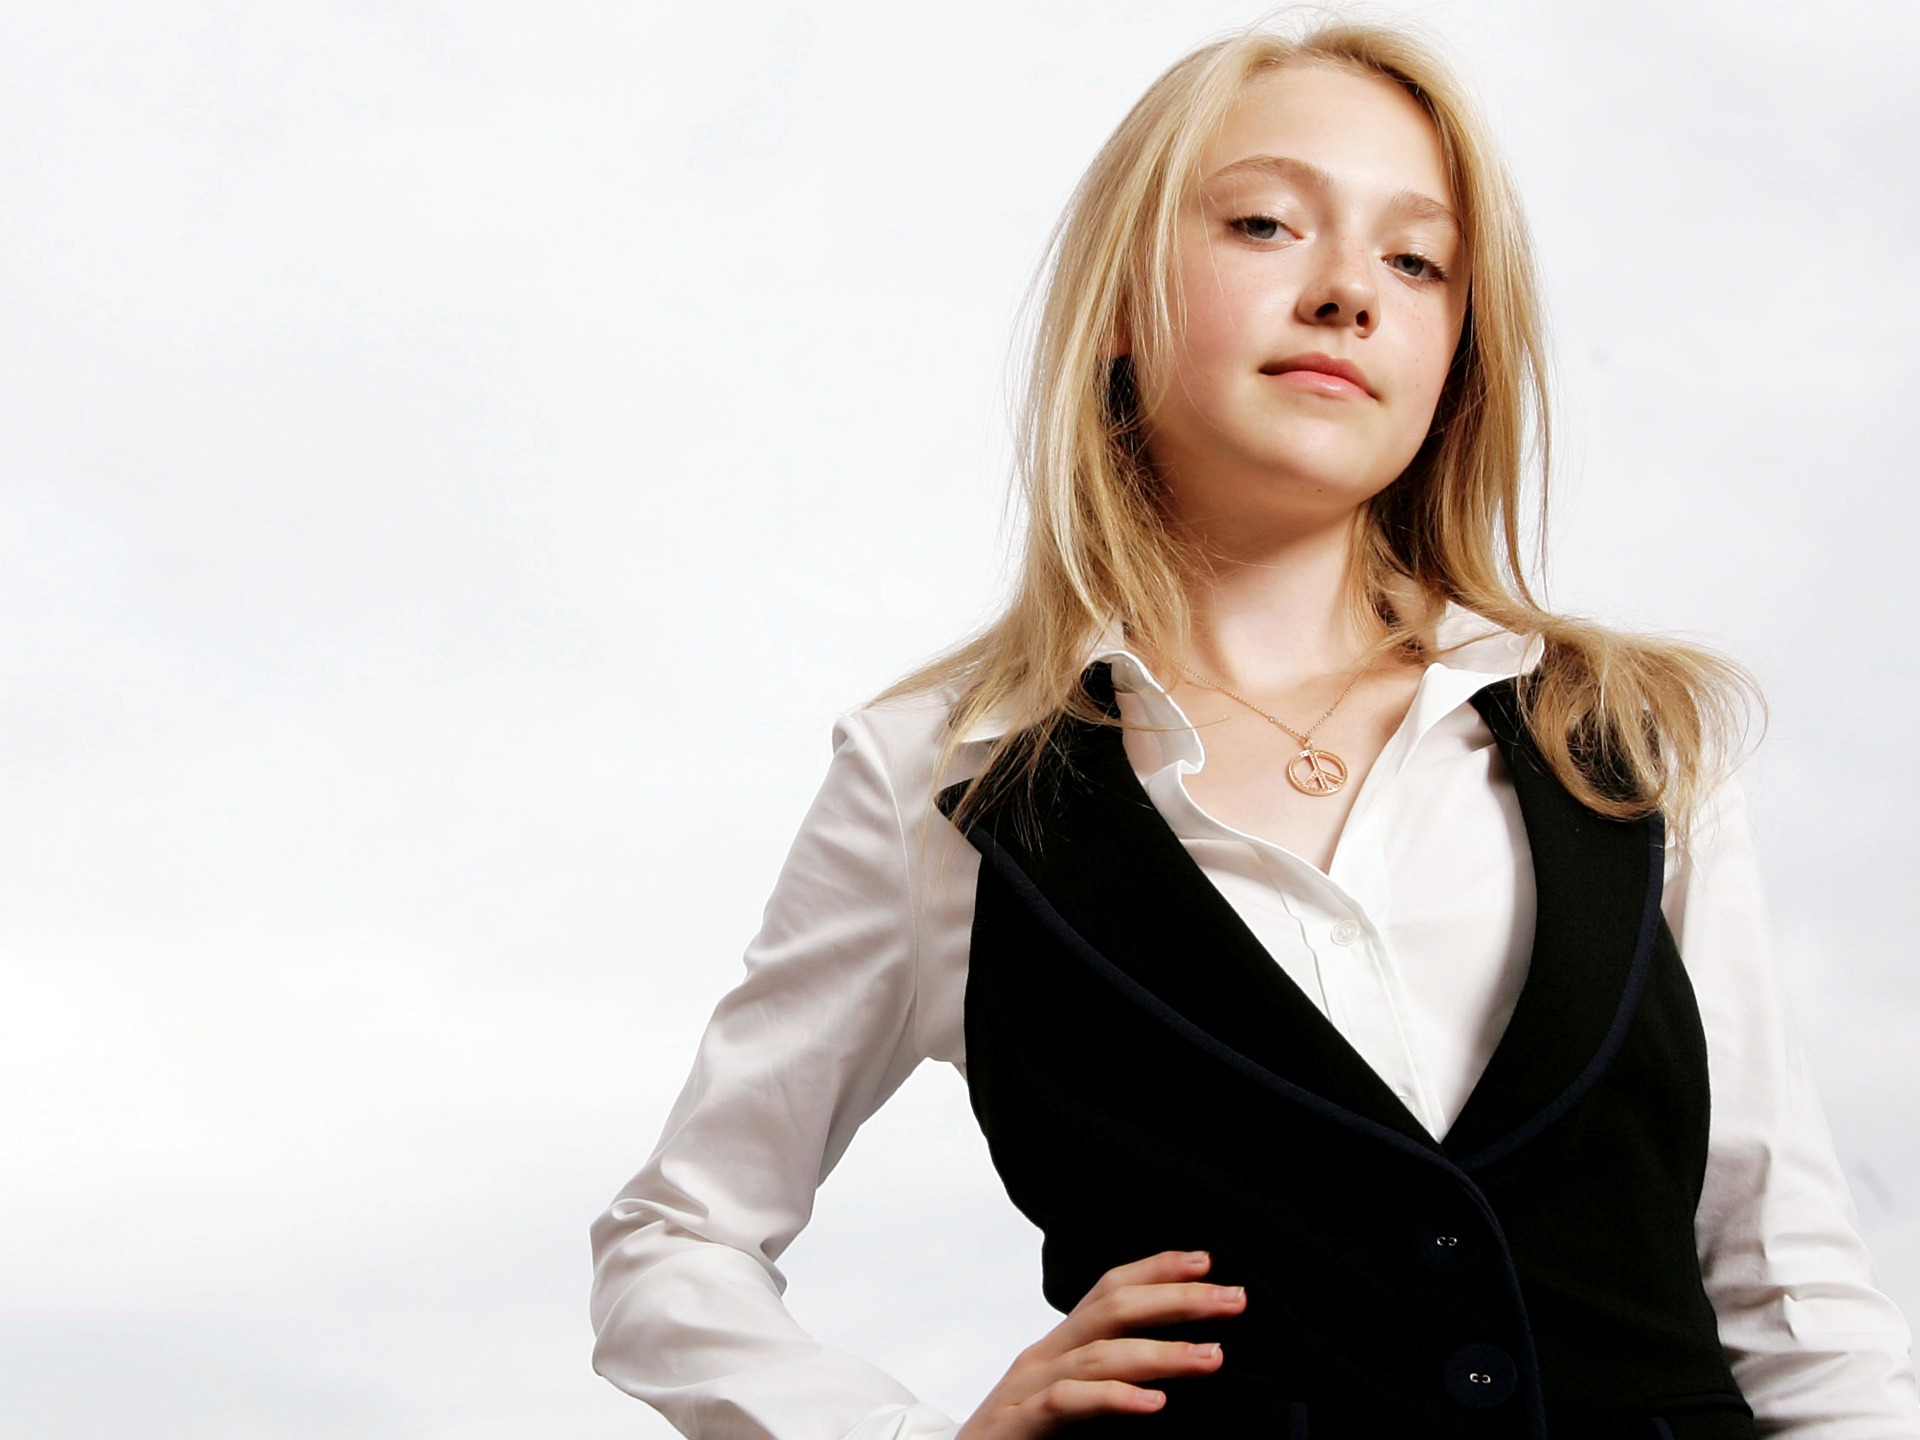 Dakota Fanning 2010 Photoshoot